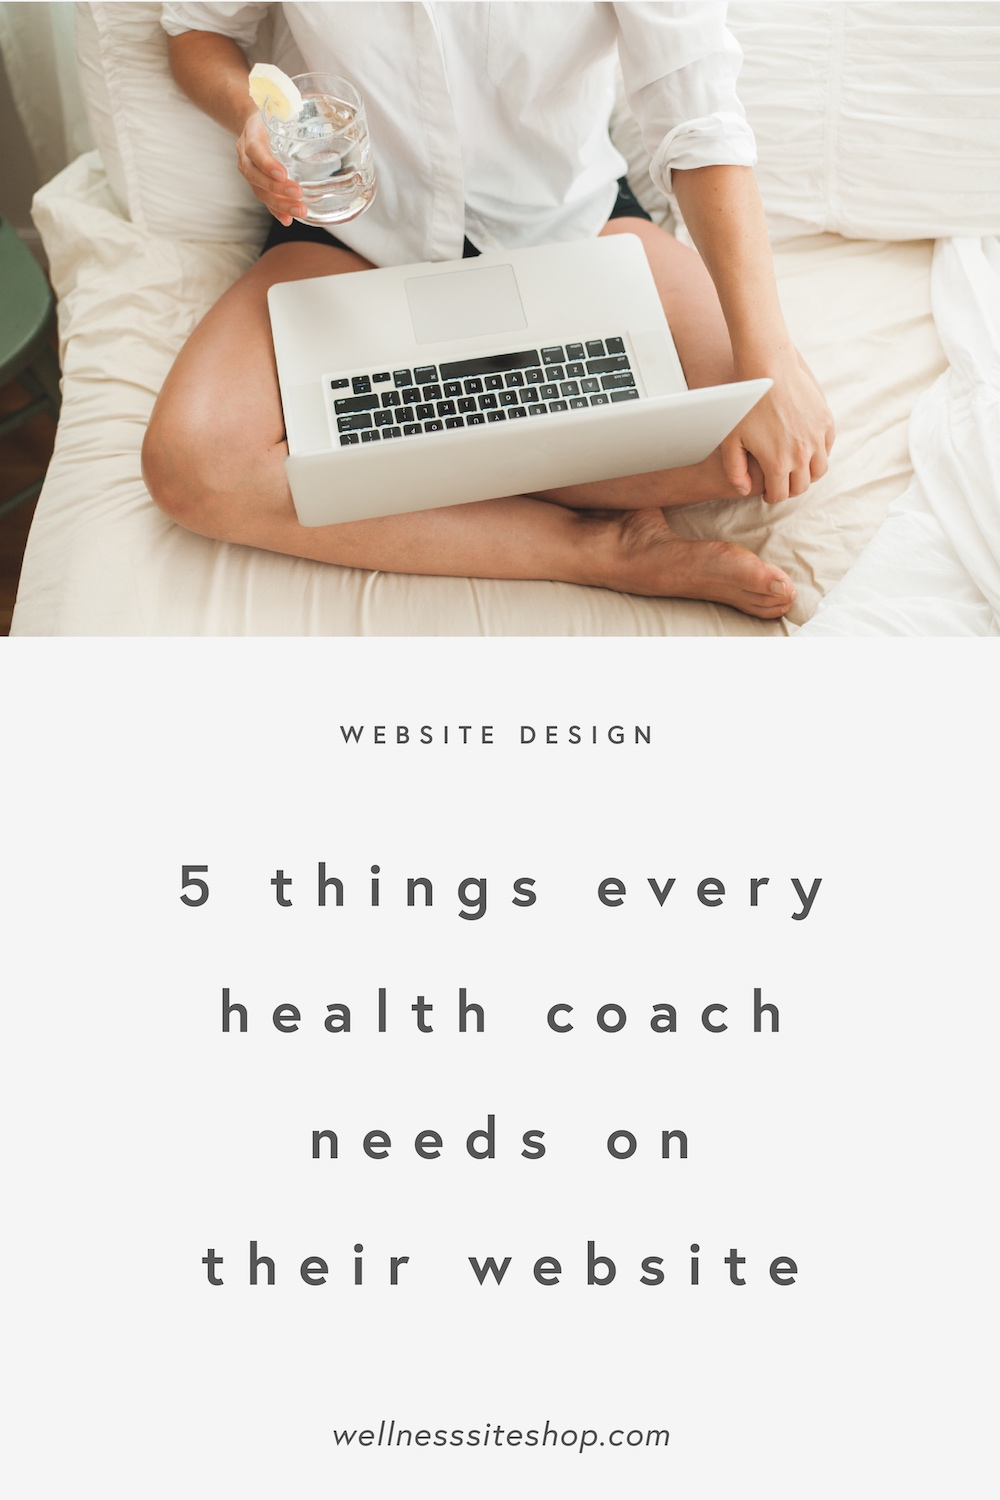 5 things every health coach needs on their website.jpg